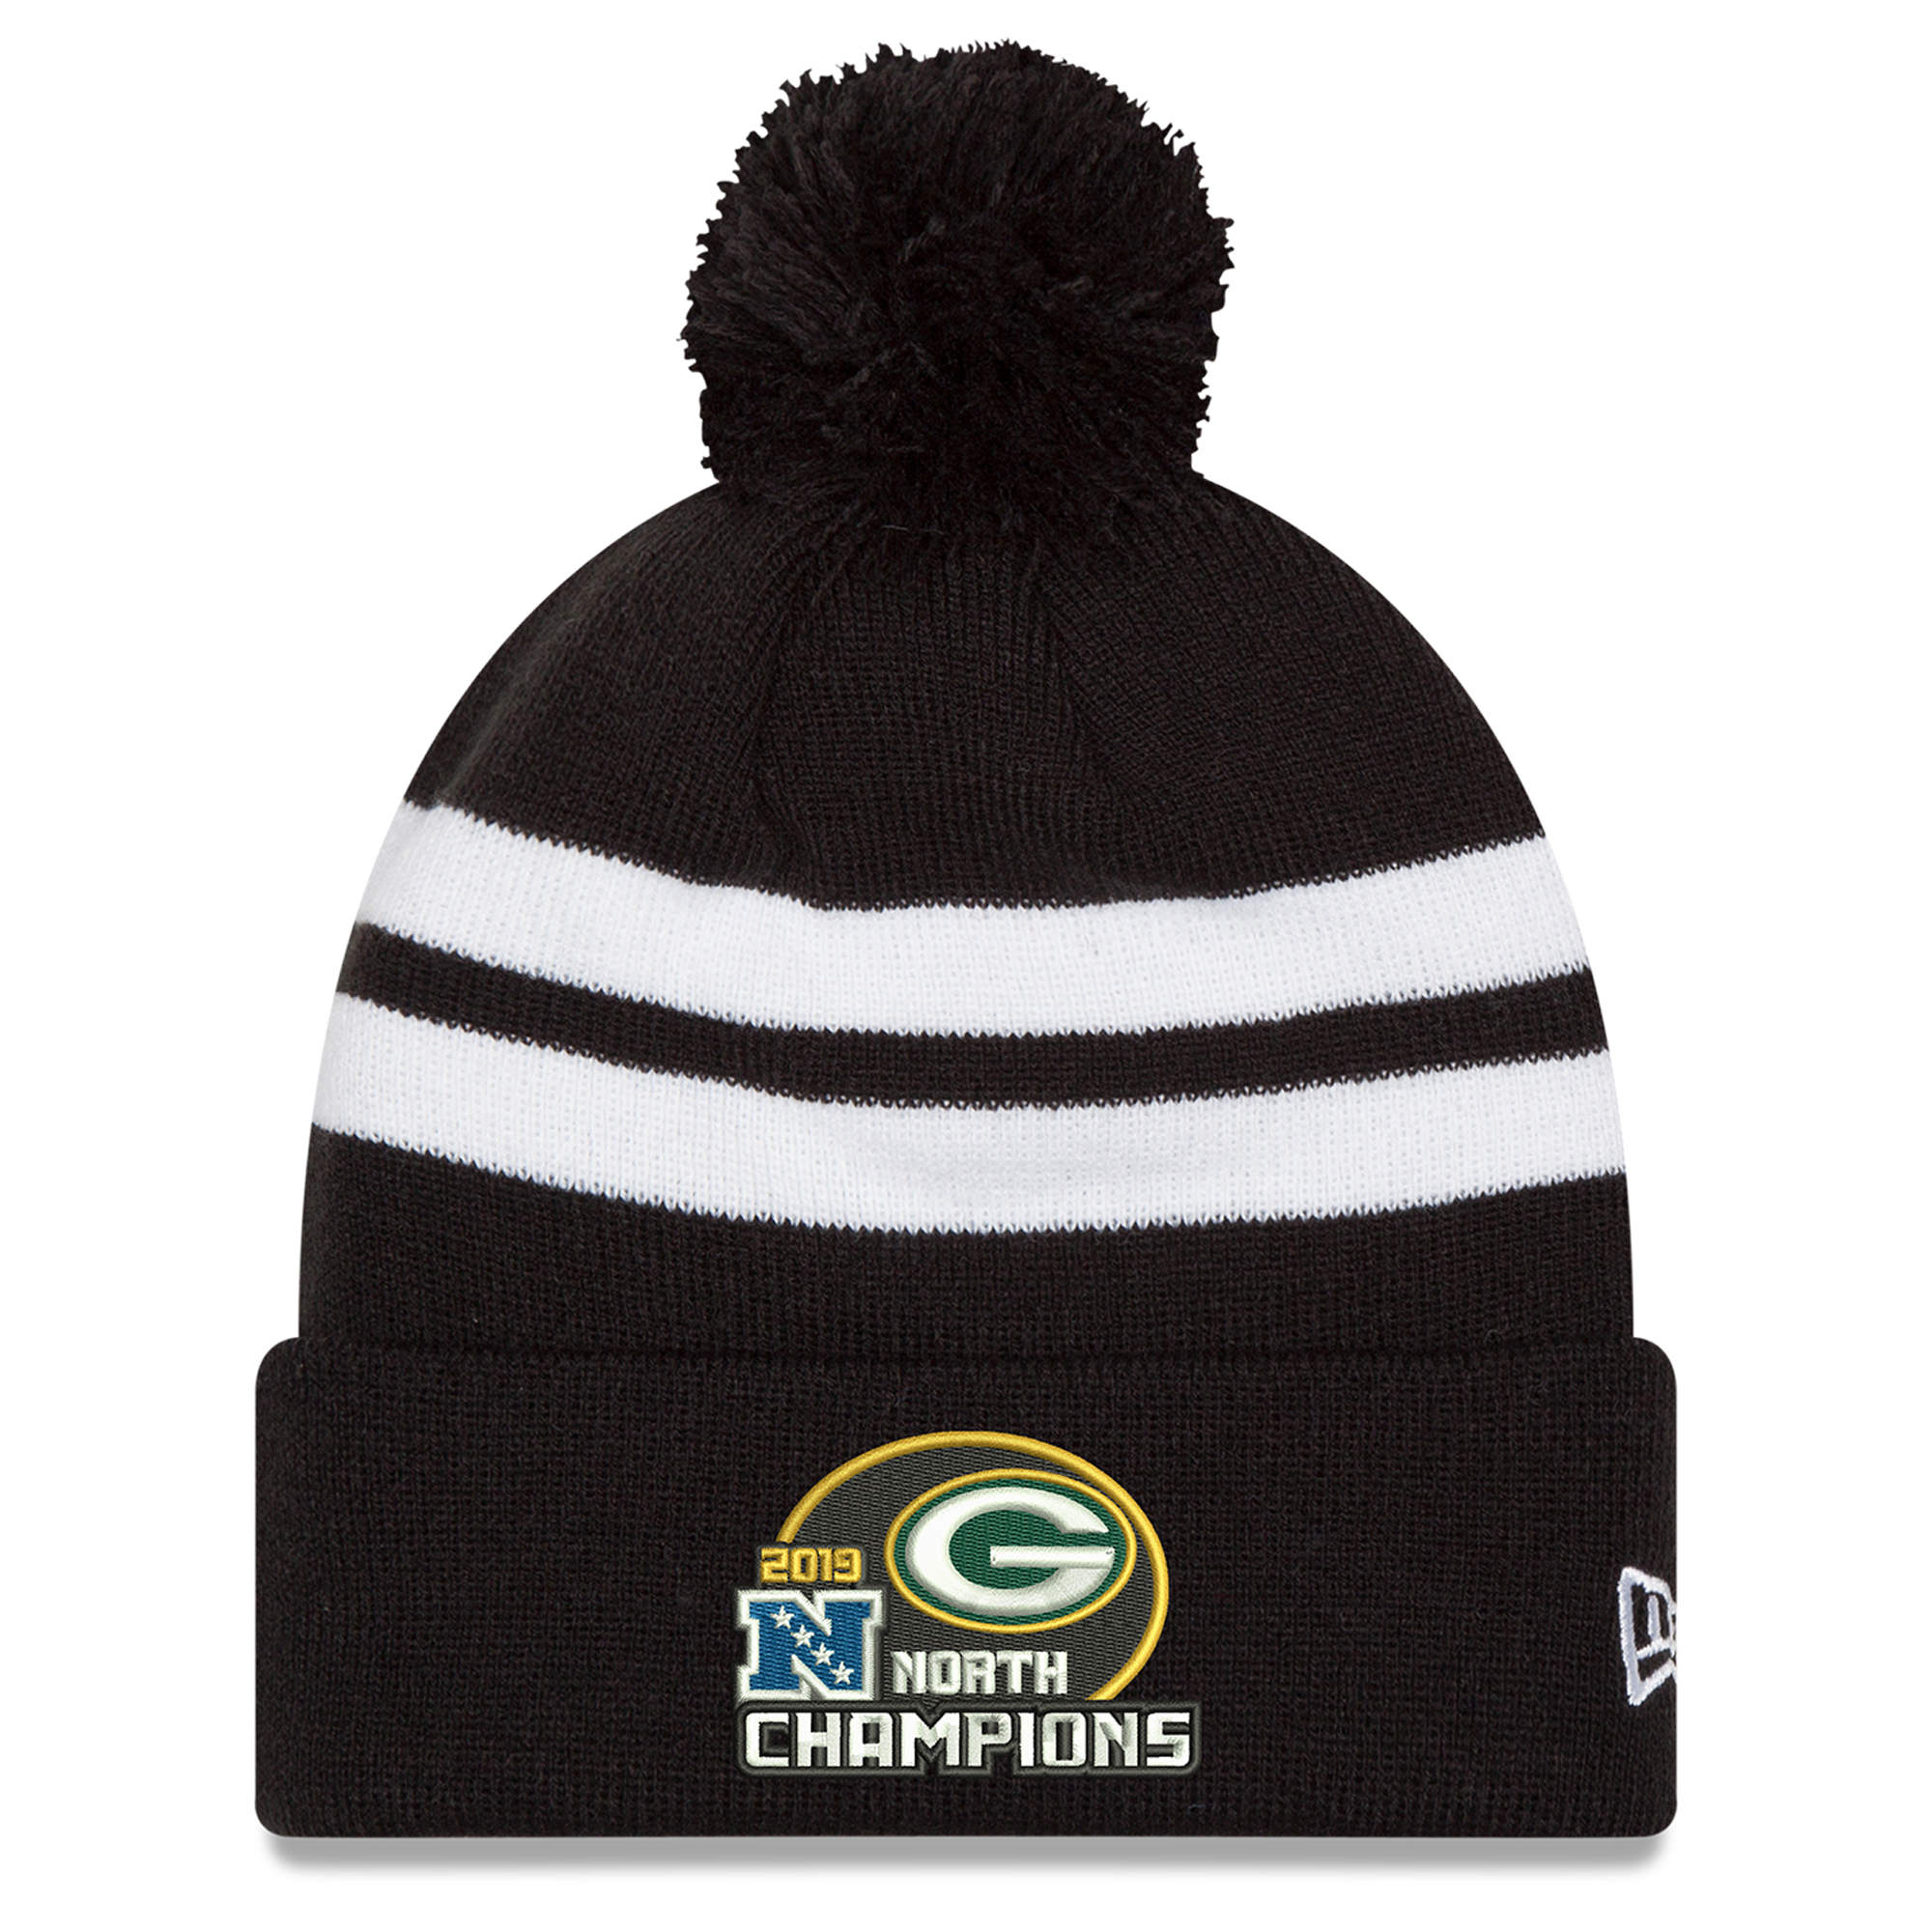 Green Bay Packers New Era 2019 NFC North Division Champions Stripe Cuffed Pom Knit Hat - Black